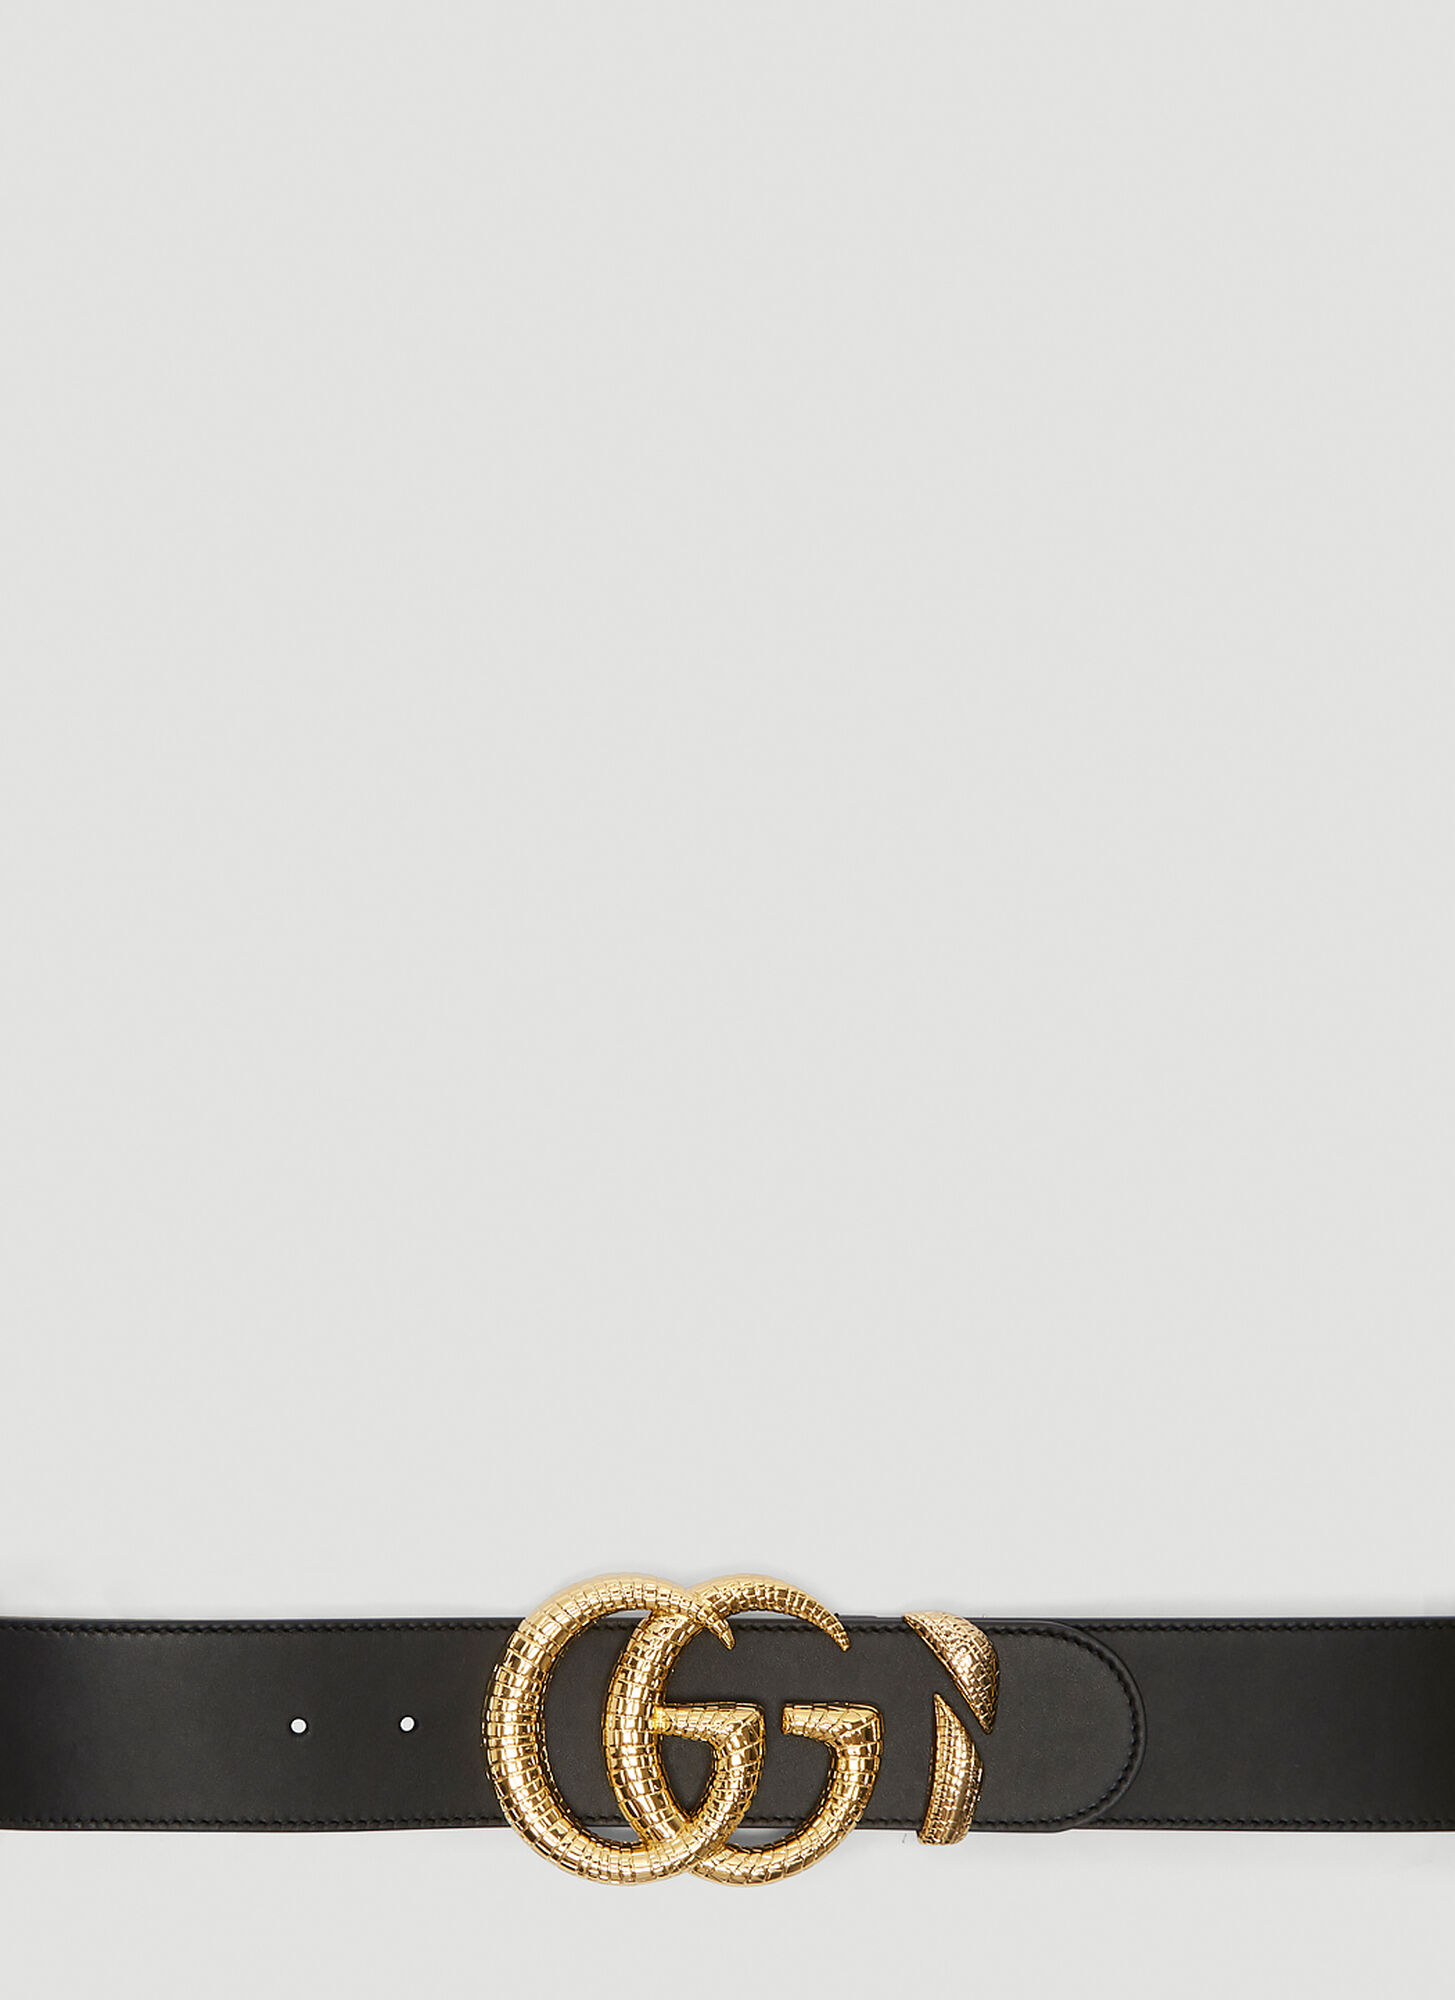 GUCCI | Gucci Double G Logo Belt In Black Size 85 | Goxip